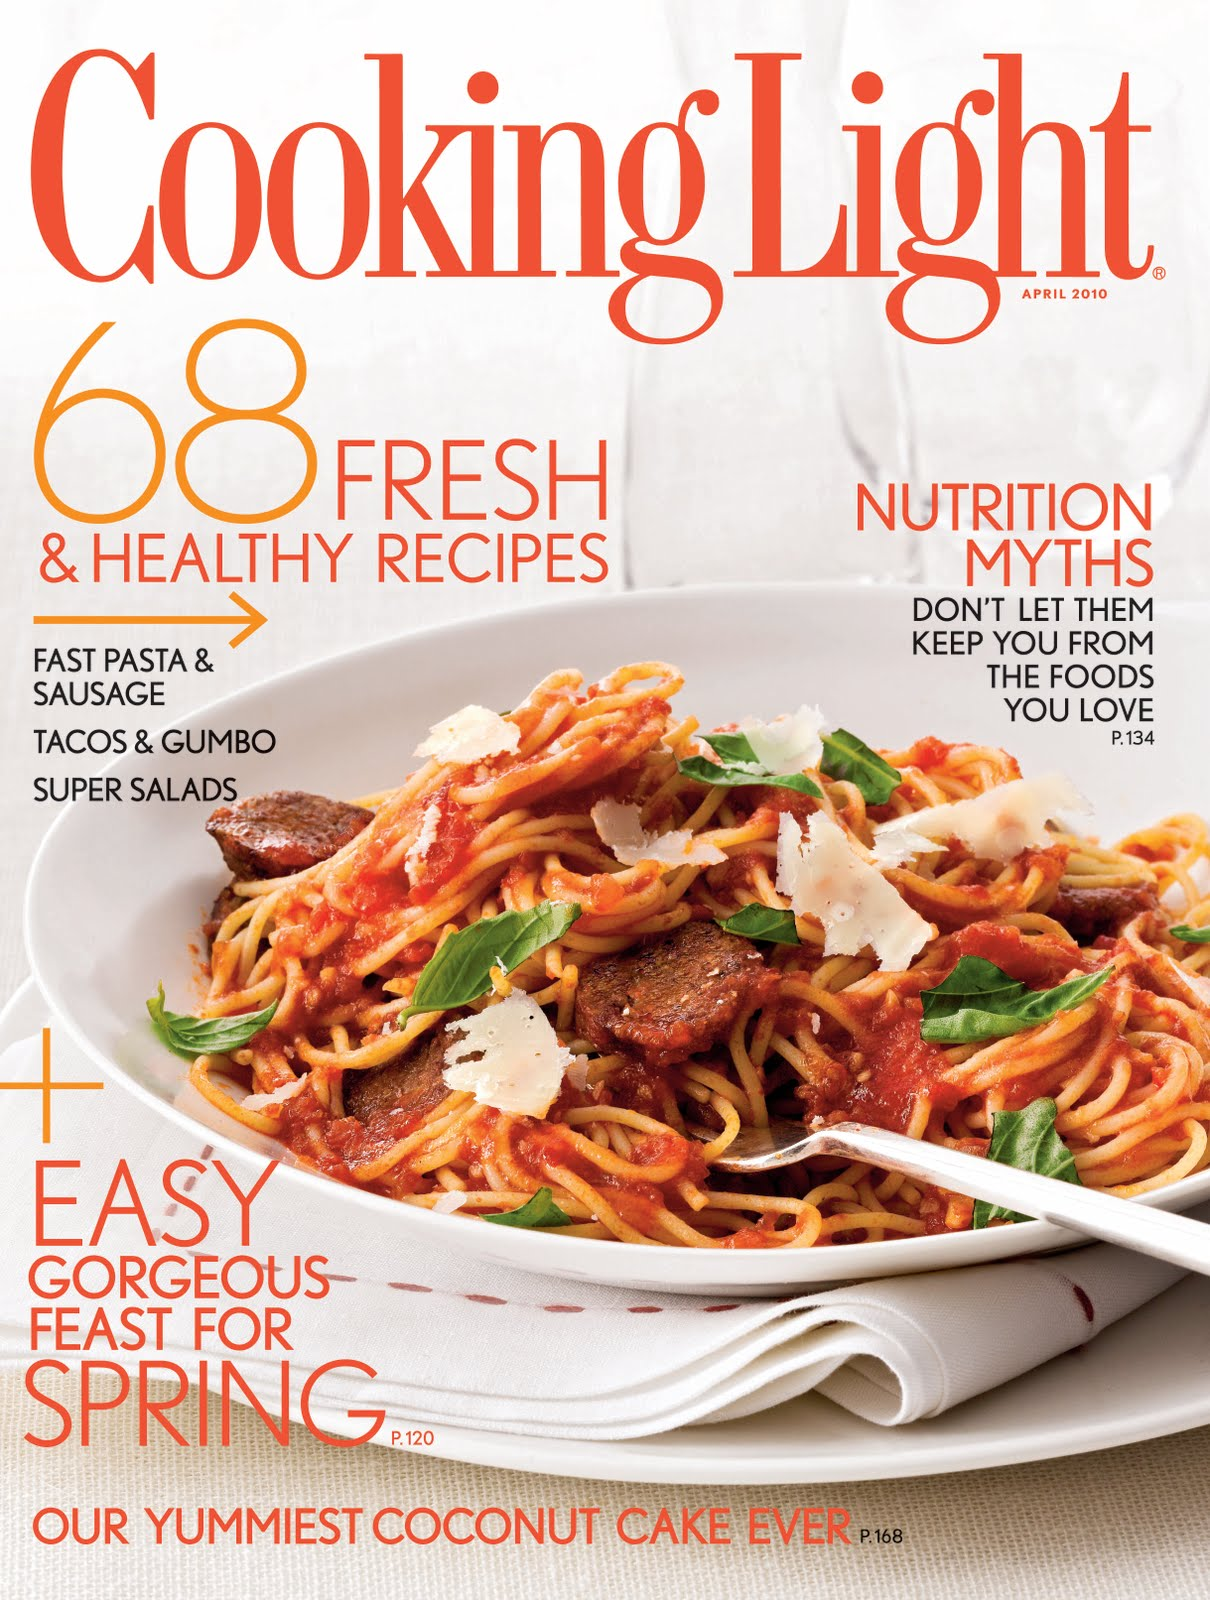 Free Cooking Light For First 500 Respondants